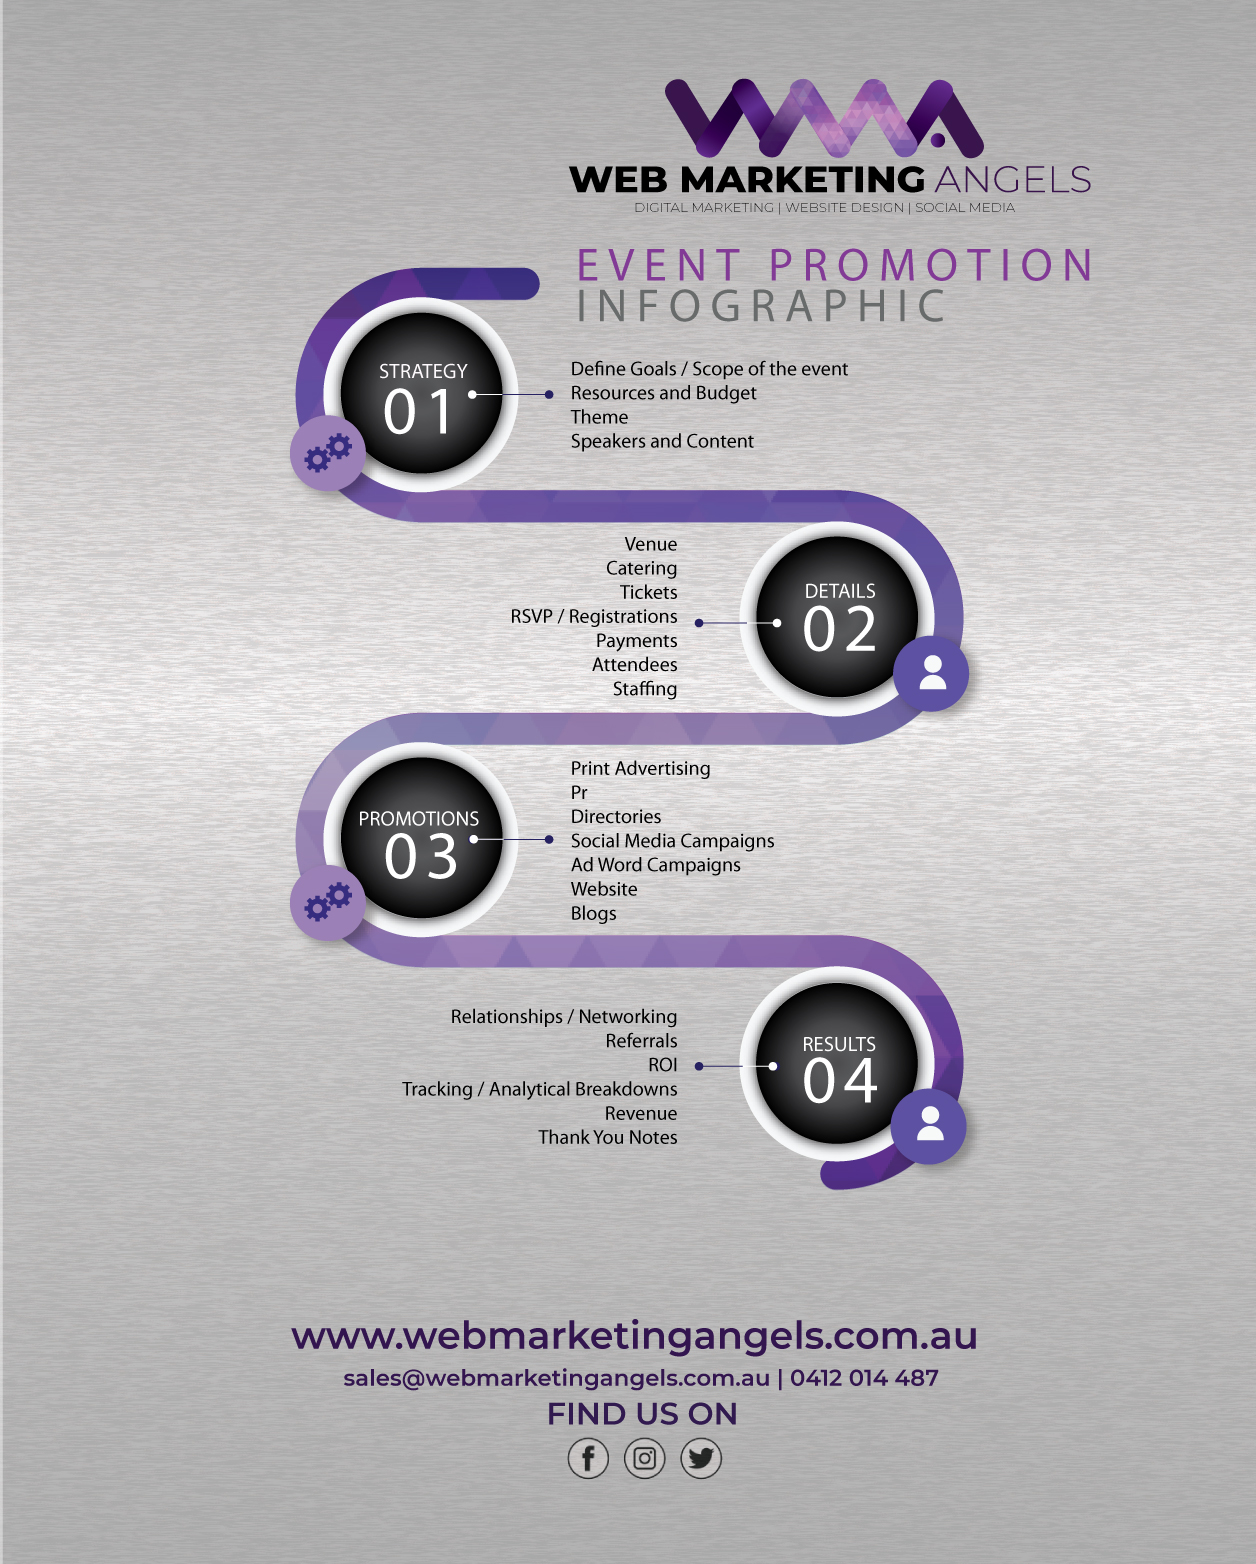 Web Marketing Angels - Event Promotion Infographic